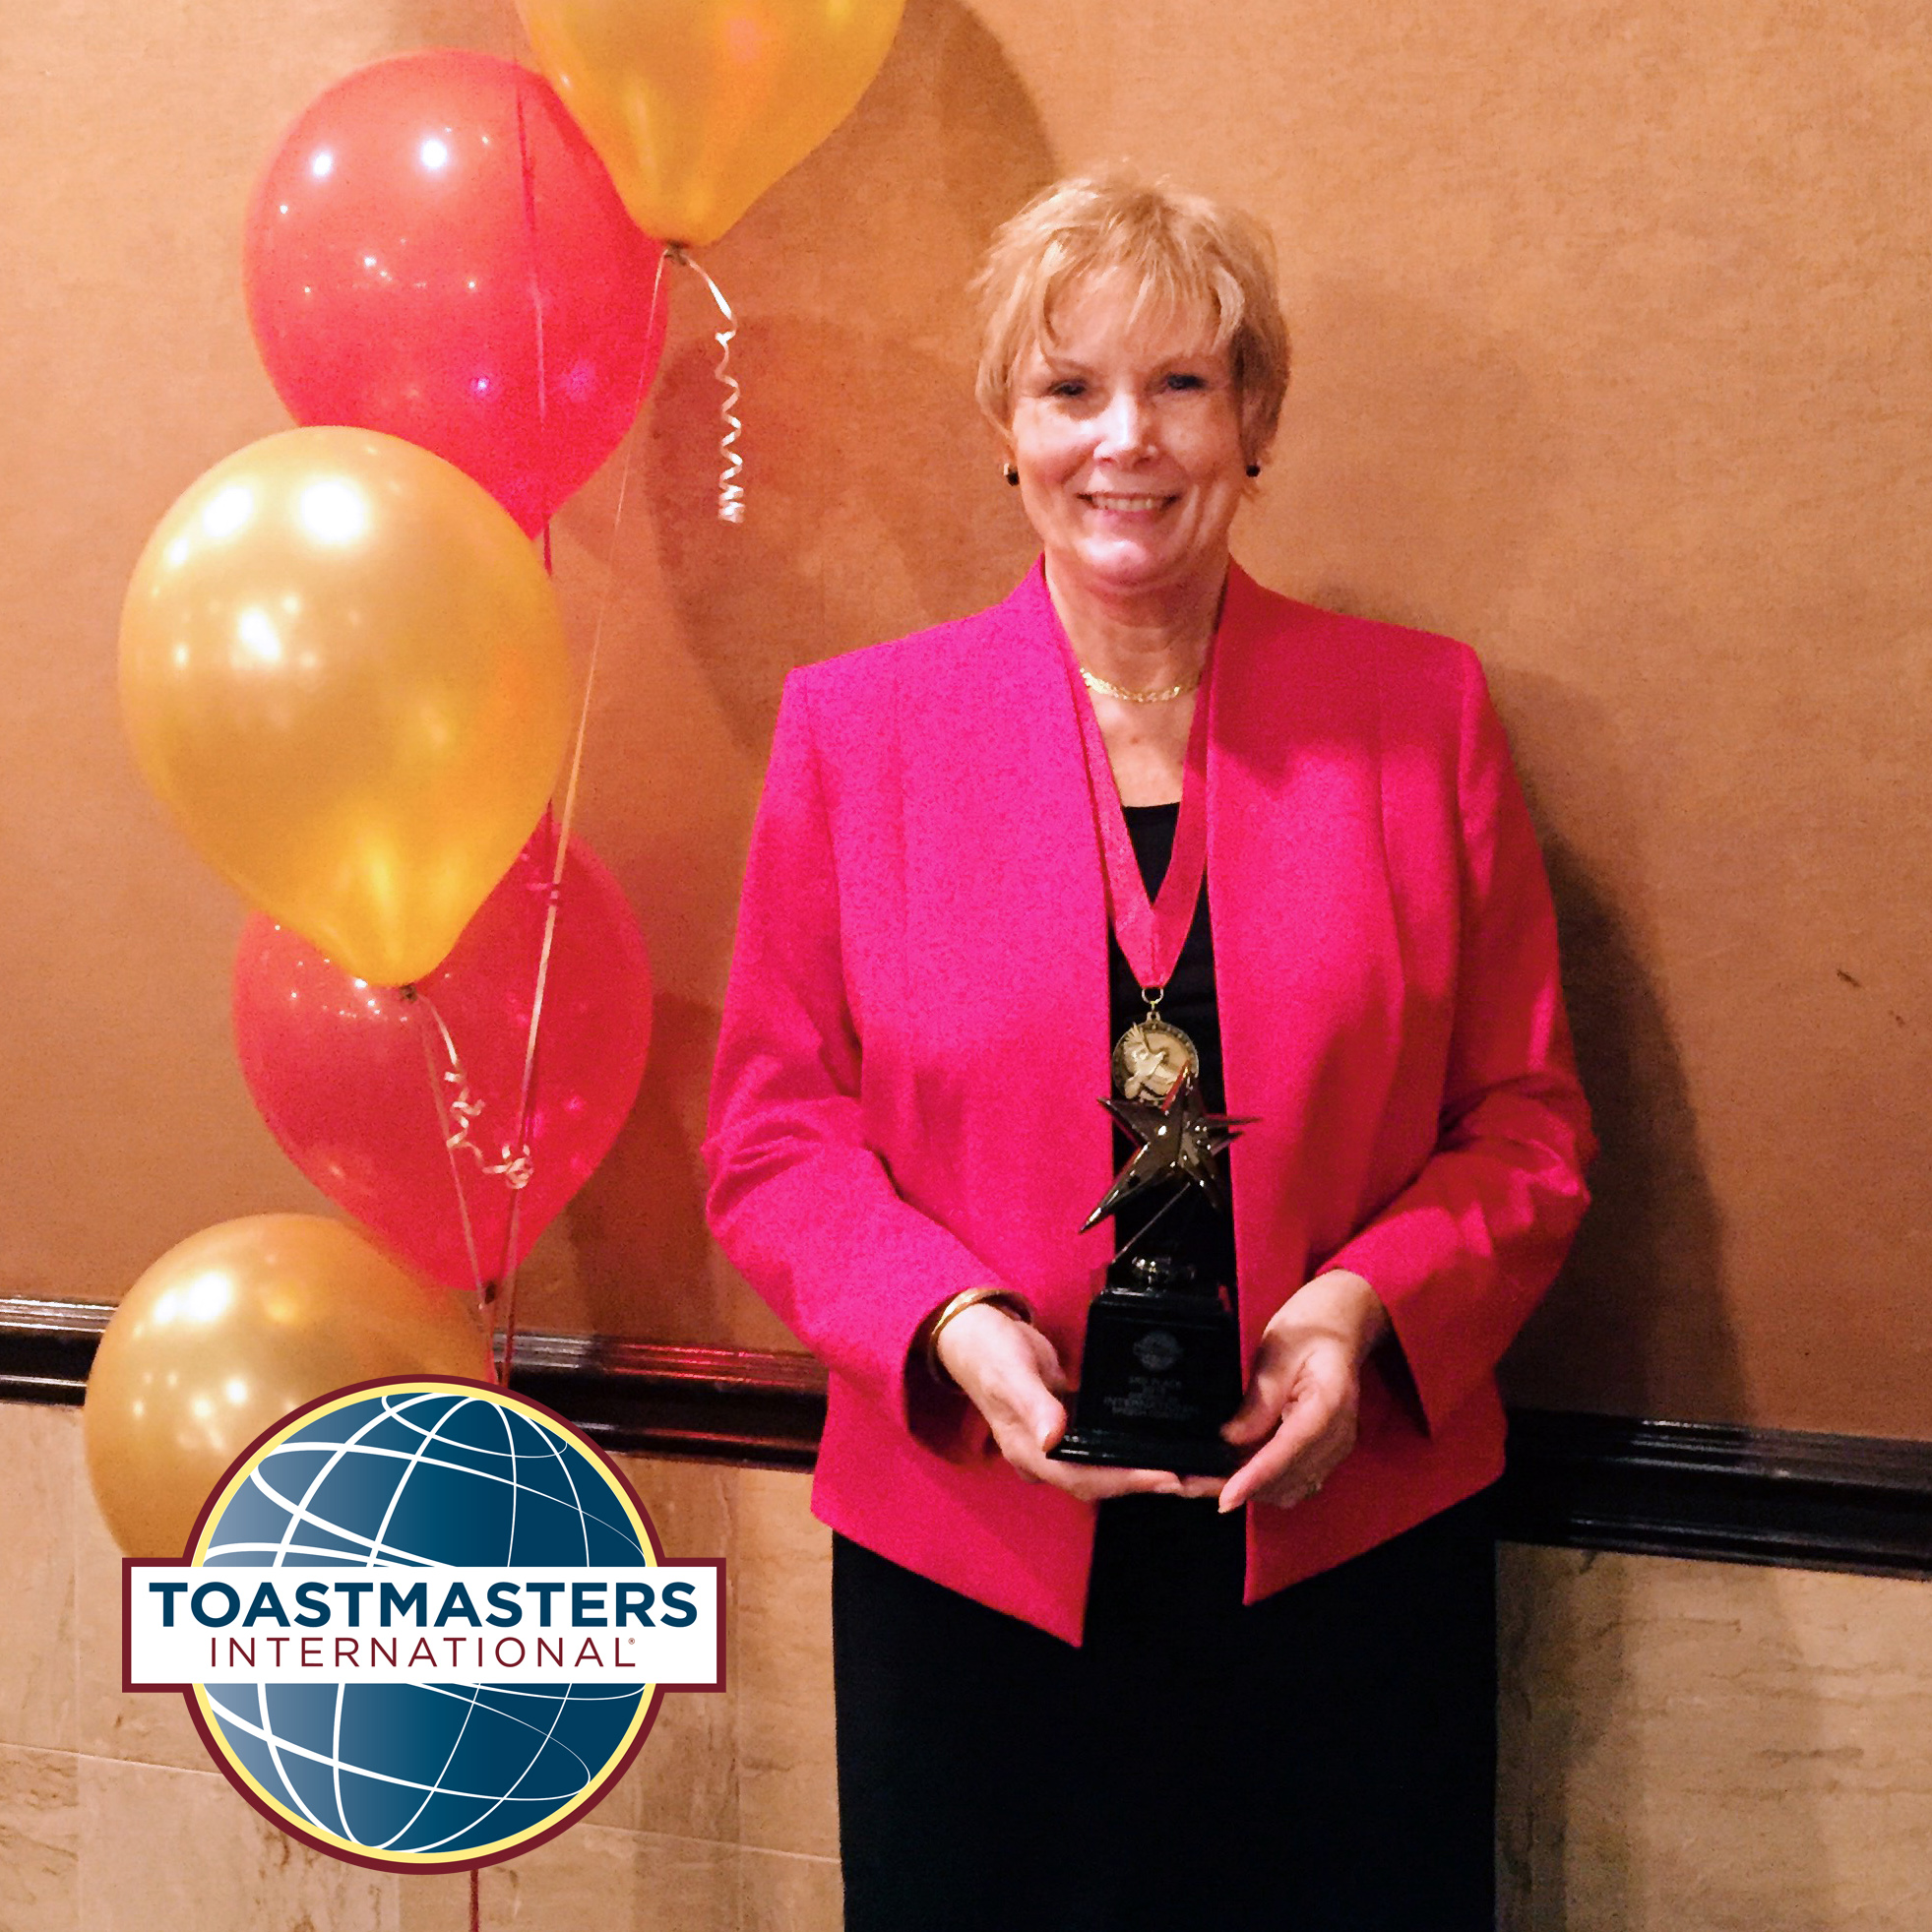 Jean-MacDonald-Toastmaster-International.JPG